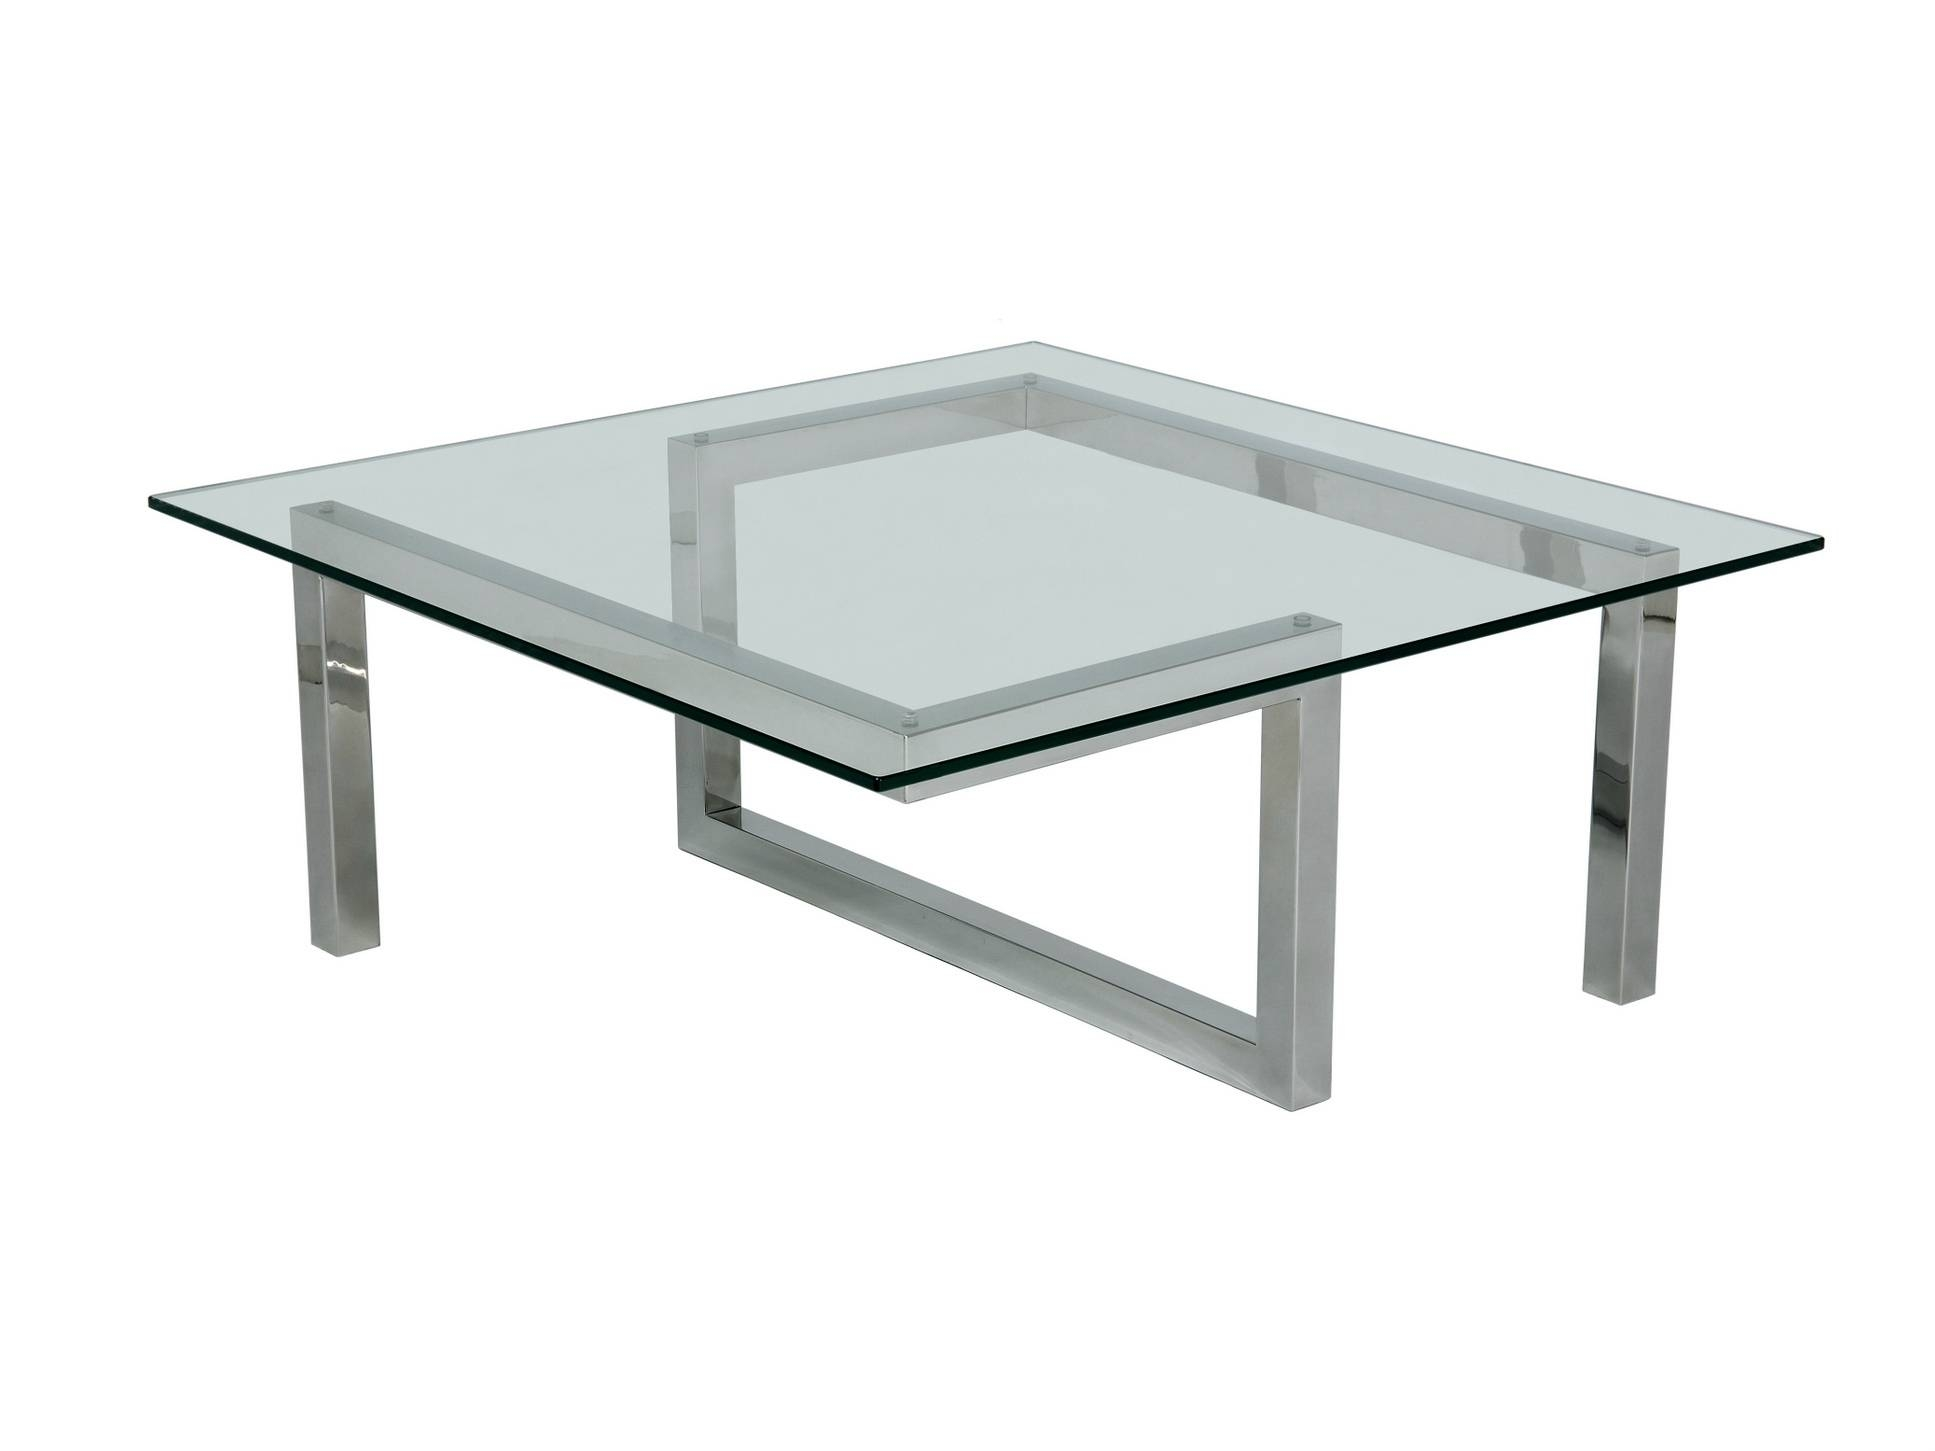 Square Glass Coffee Table For Living Room Decoration - Ruchi Designs intended for Square Glass Coffee Tables (Image 13 of 15)